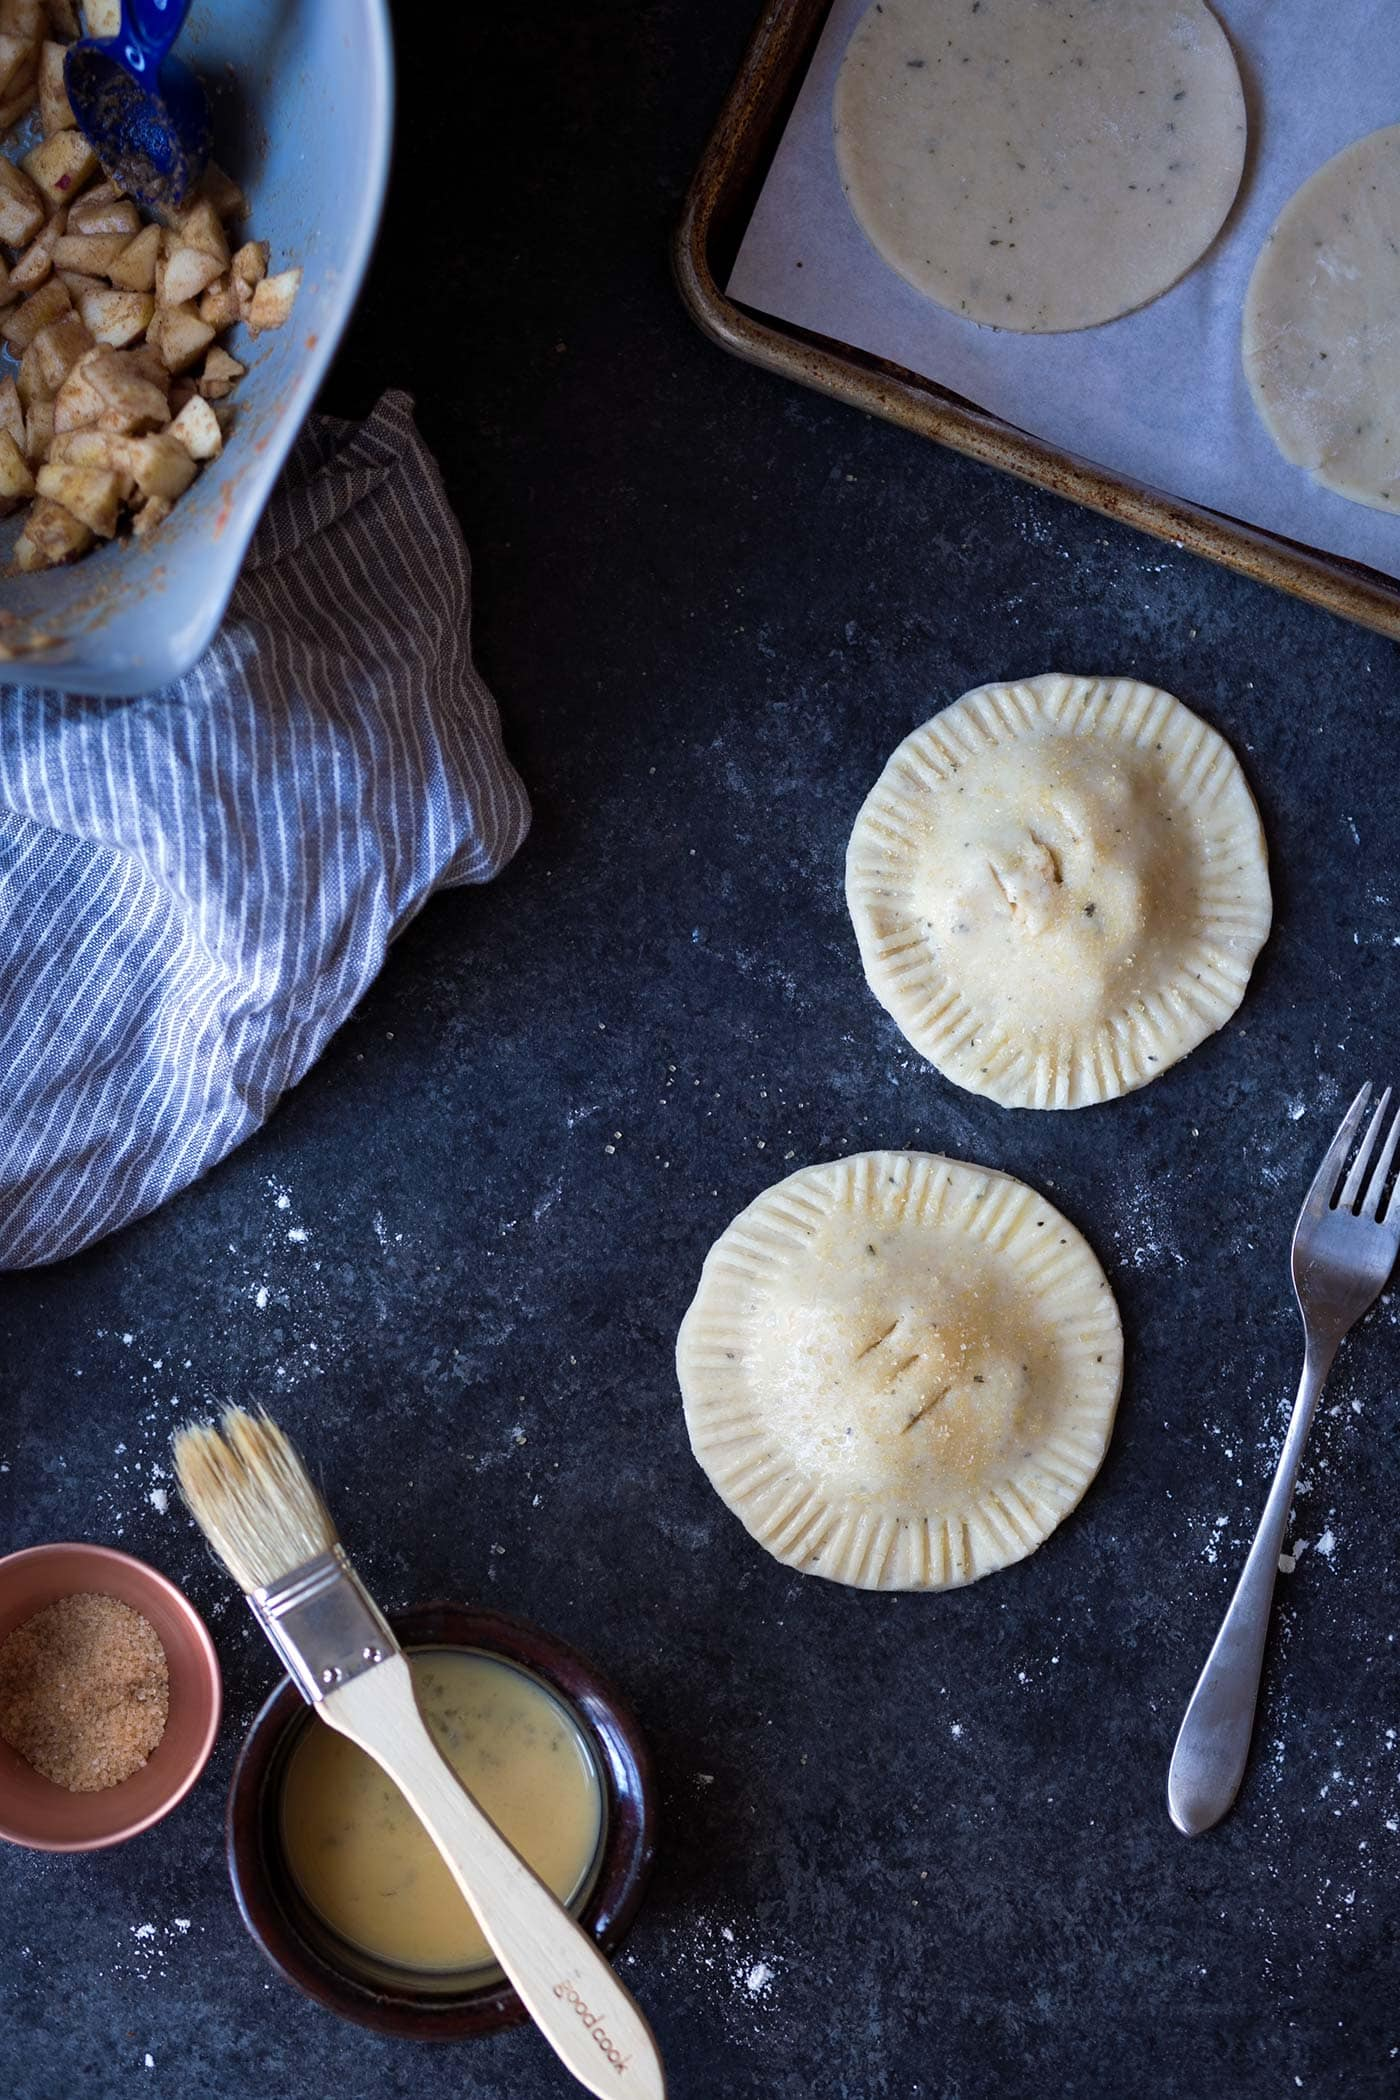 These apple hand pies have a delicate crust seasoned with fresh rosemary and thyme. They're a fragrant treat that will make your kitchen smell amazing! SavorySimple.net